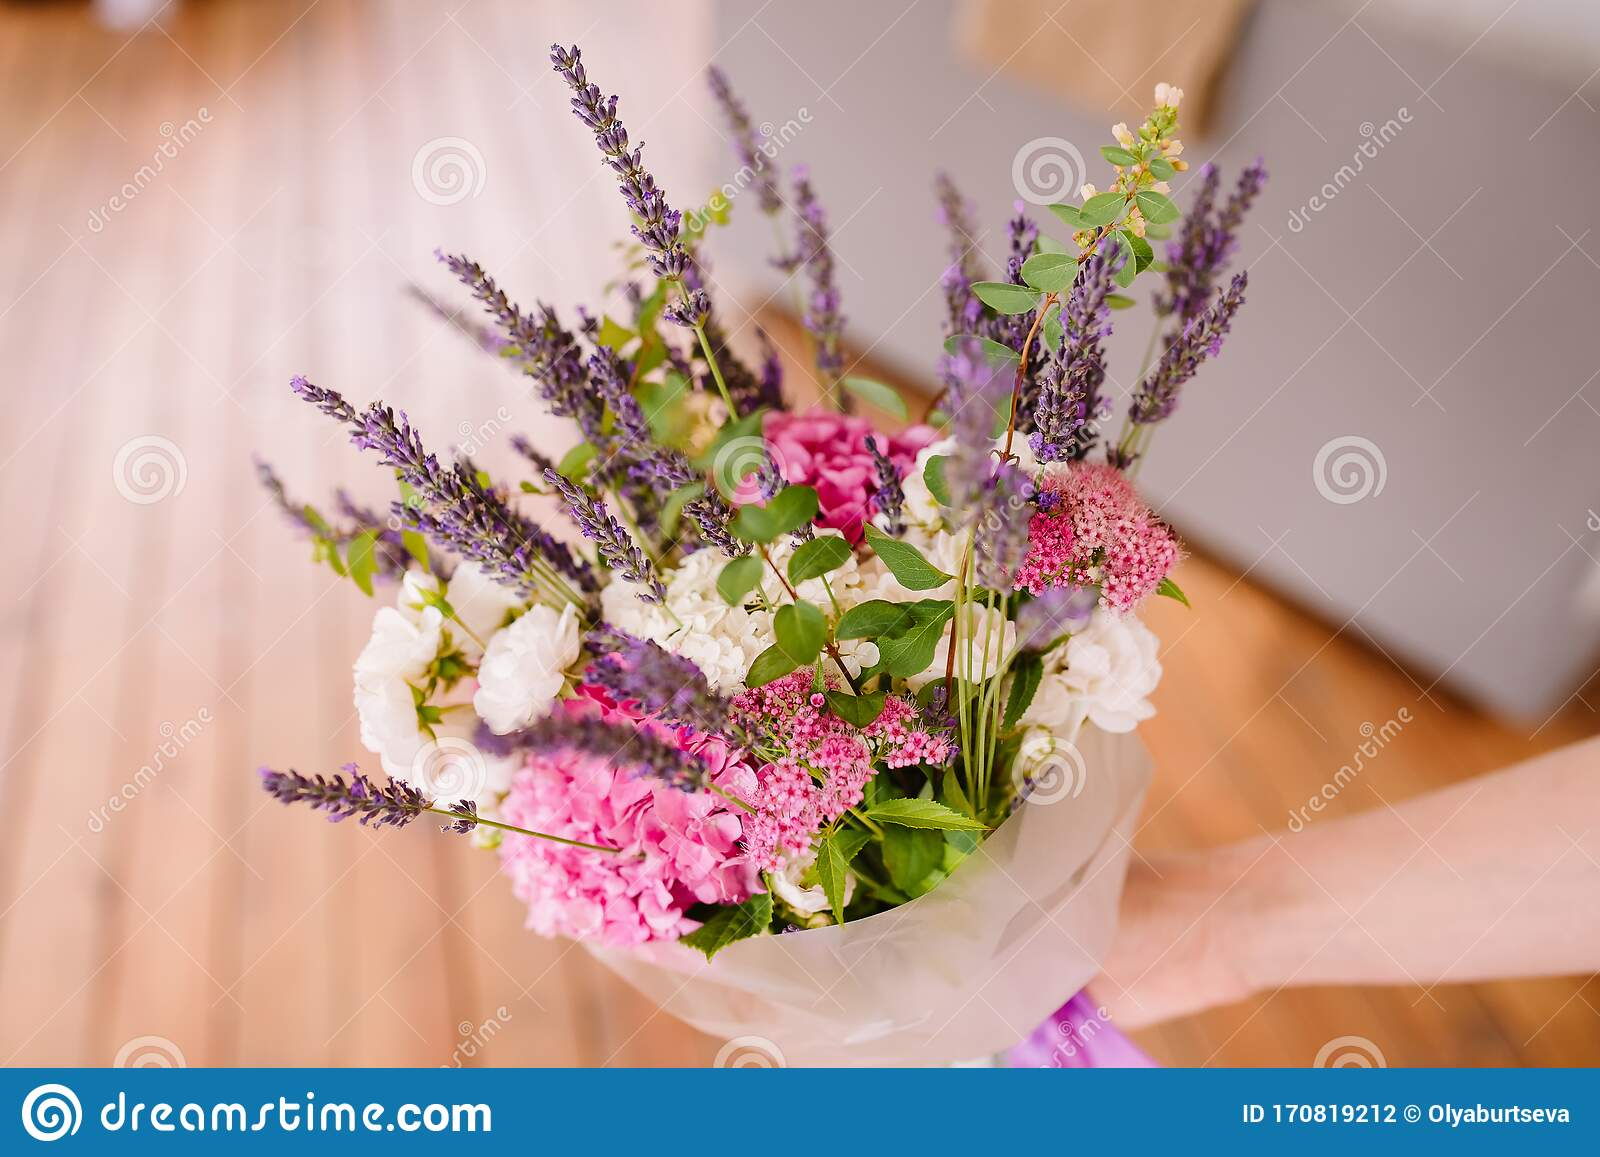 Bouquet Of Lavender And Dry Flowers Colorful Summer Bunch Of Purple Lavender And Pink Hydrangea Flowers Stock Photo Image Of Holding Decoration 170819212